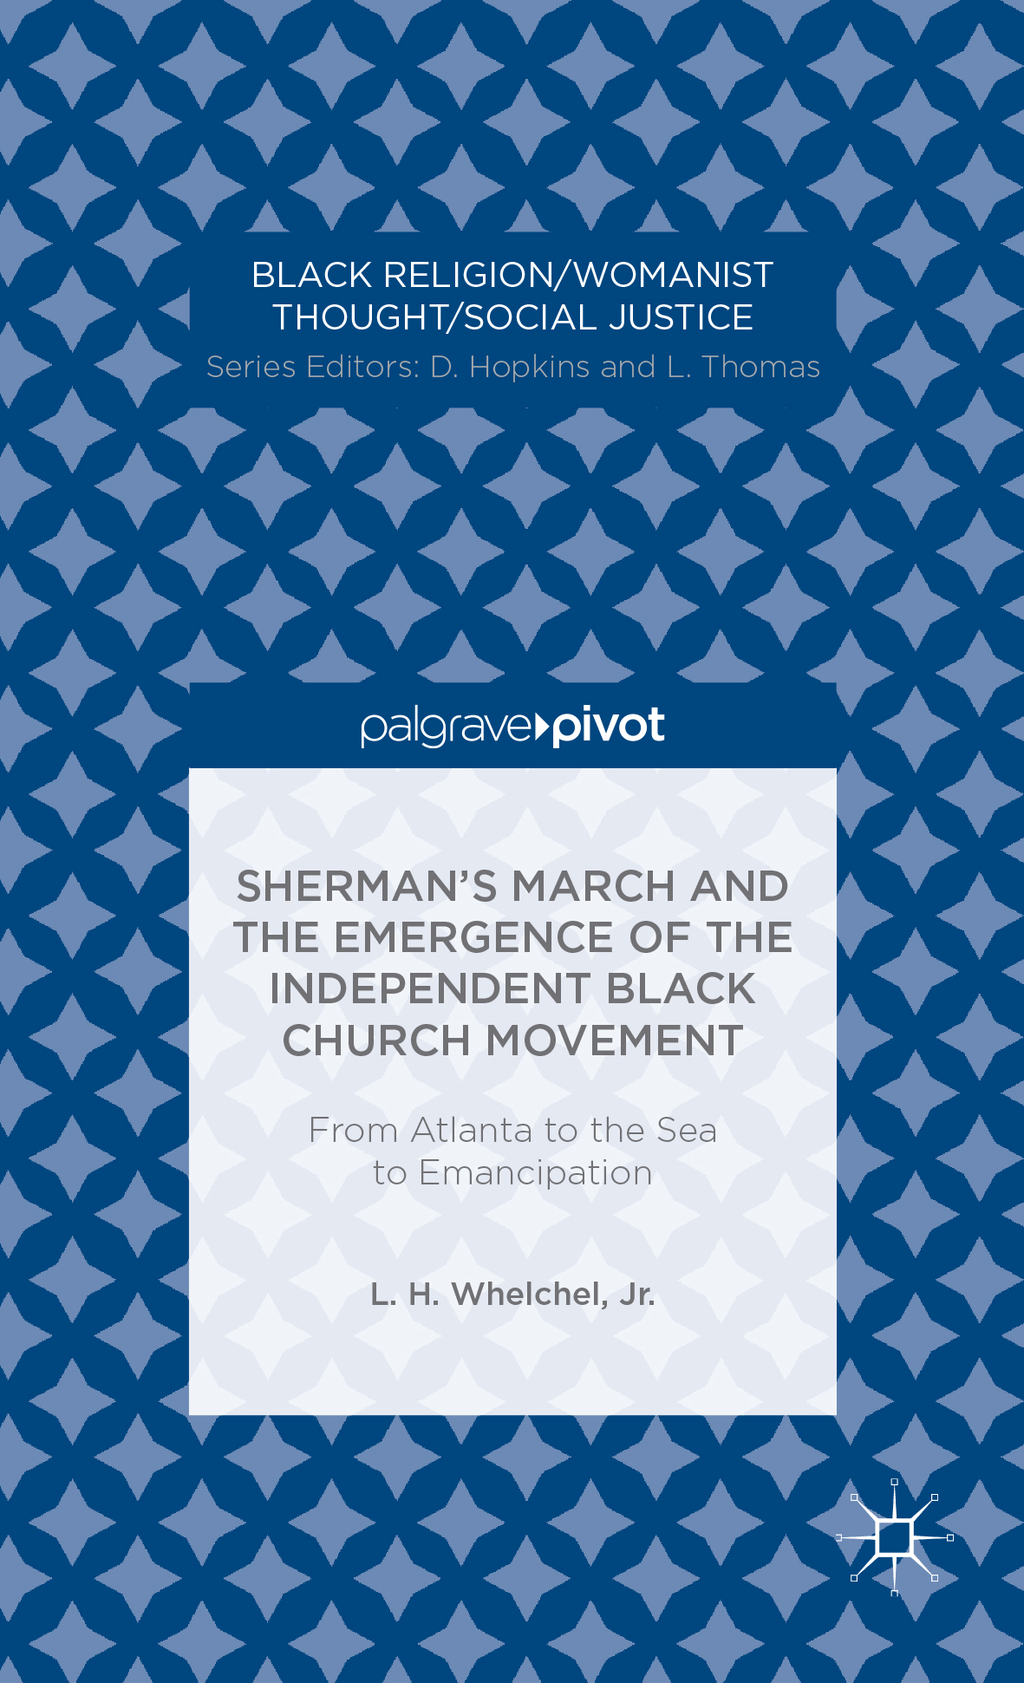 Sherman's March and the Emergence of the Independent Black Church Movement From Atlanta to the Sea to Emancipation